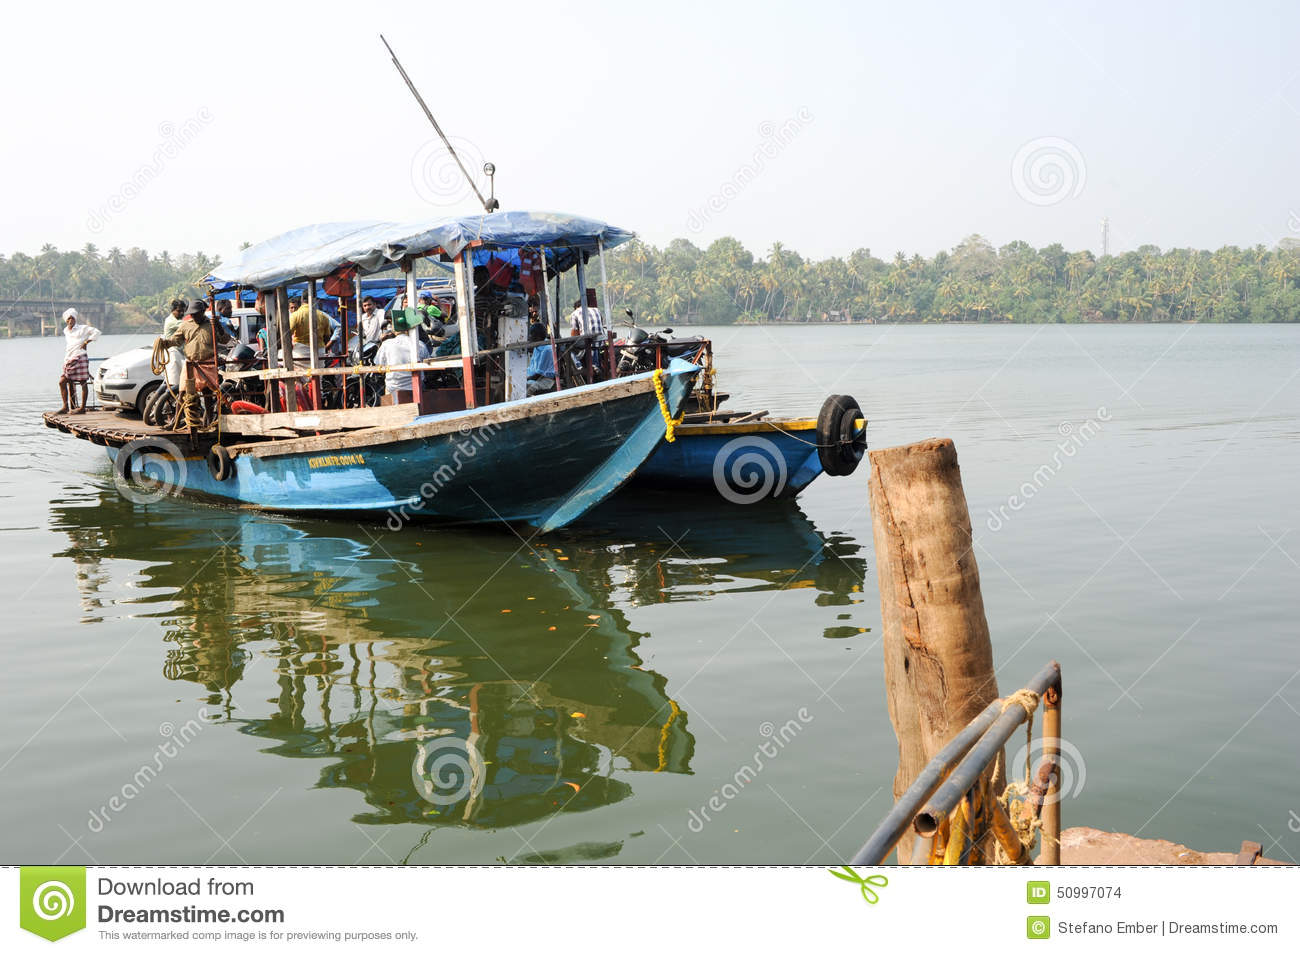 Kollam India  city photos gallery : ... river backwaters ferry kollam india january kollam india 50997074